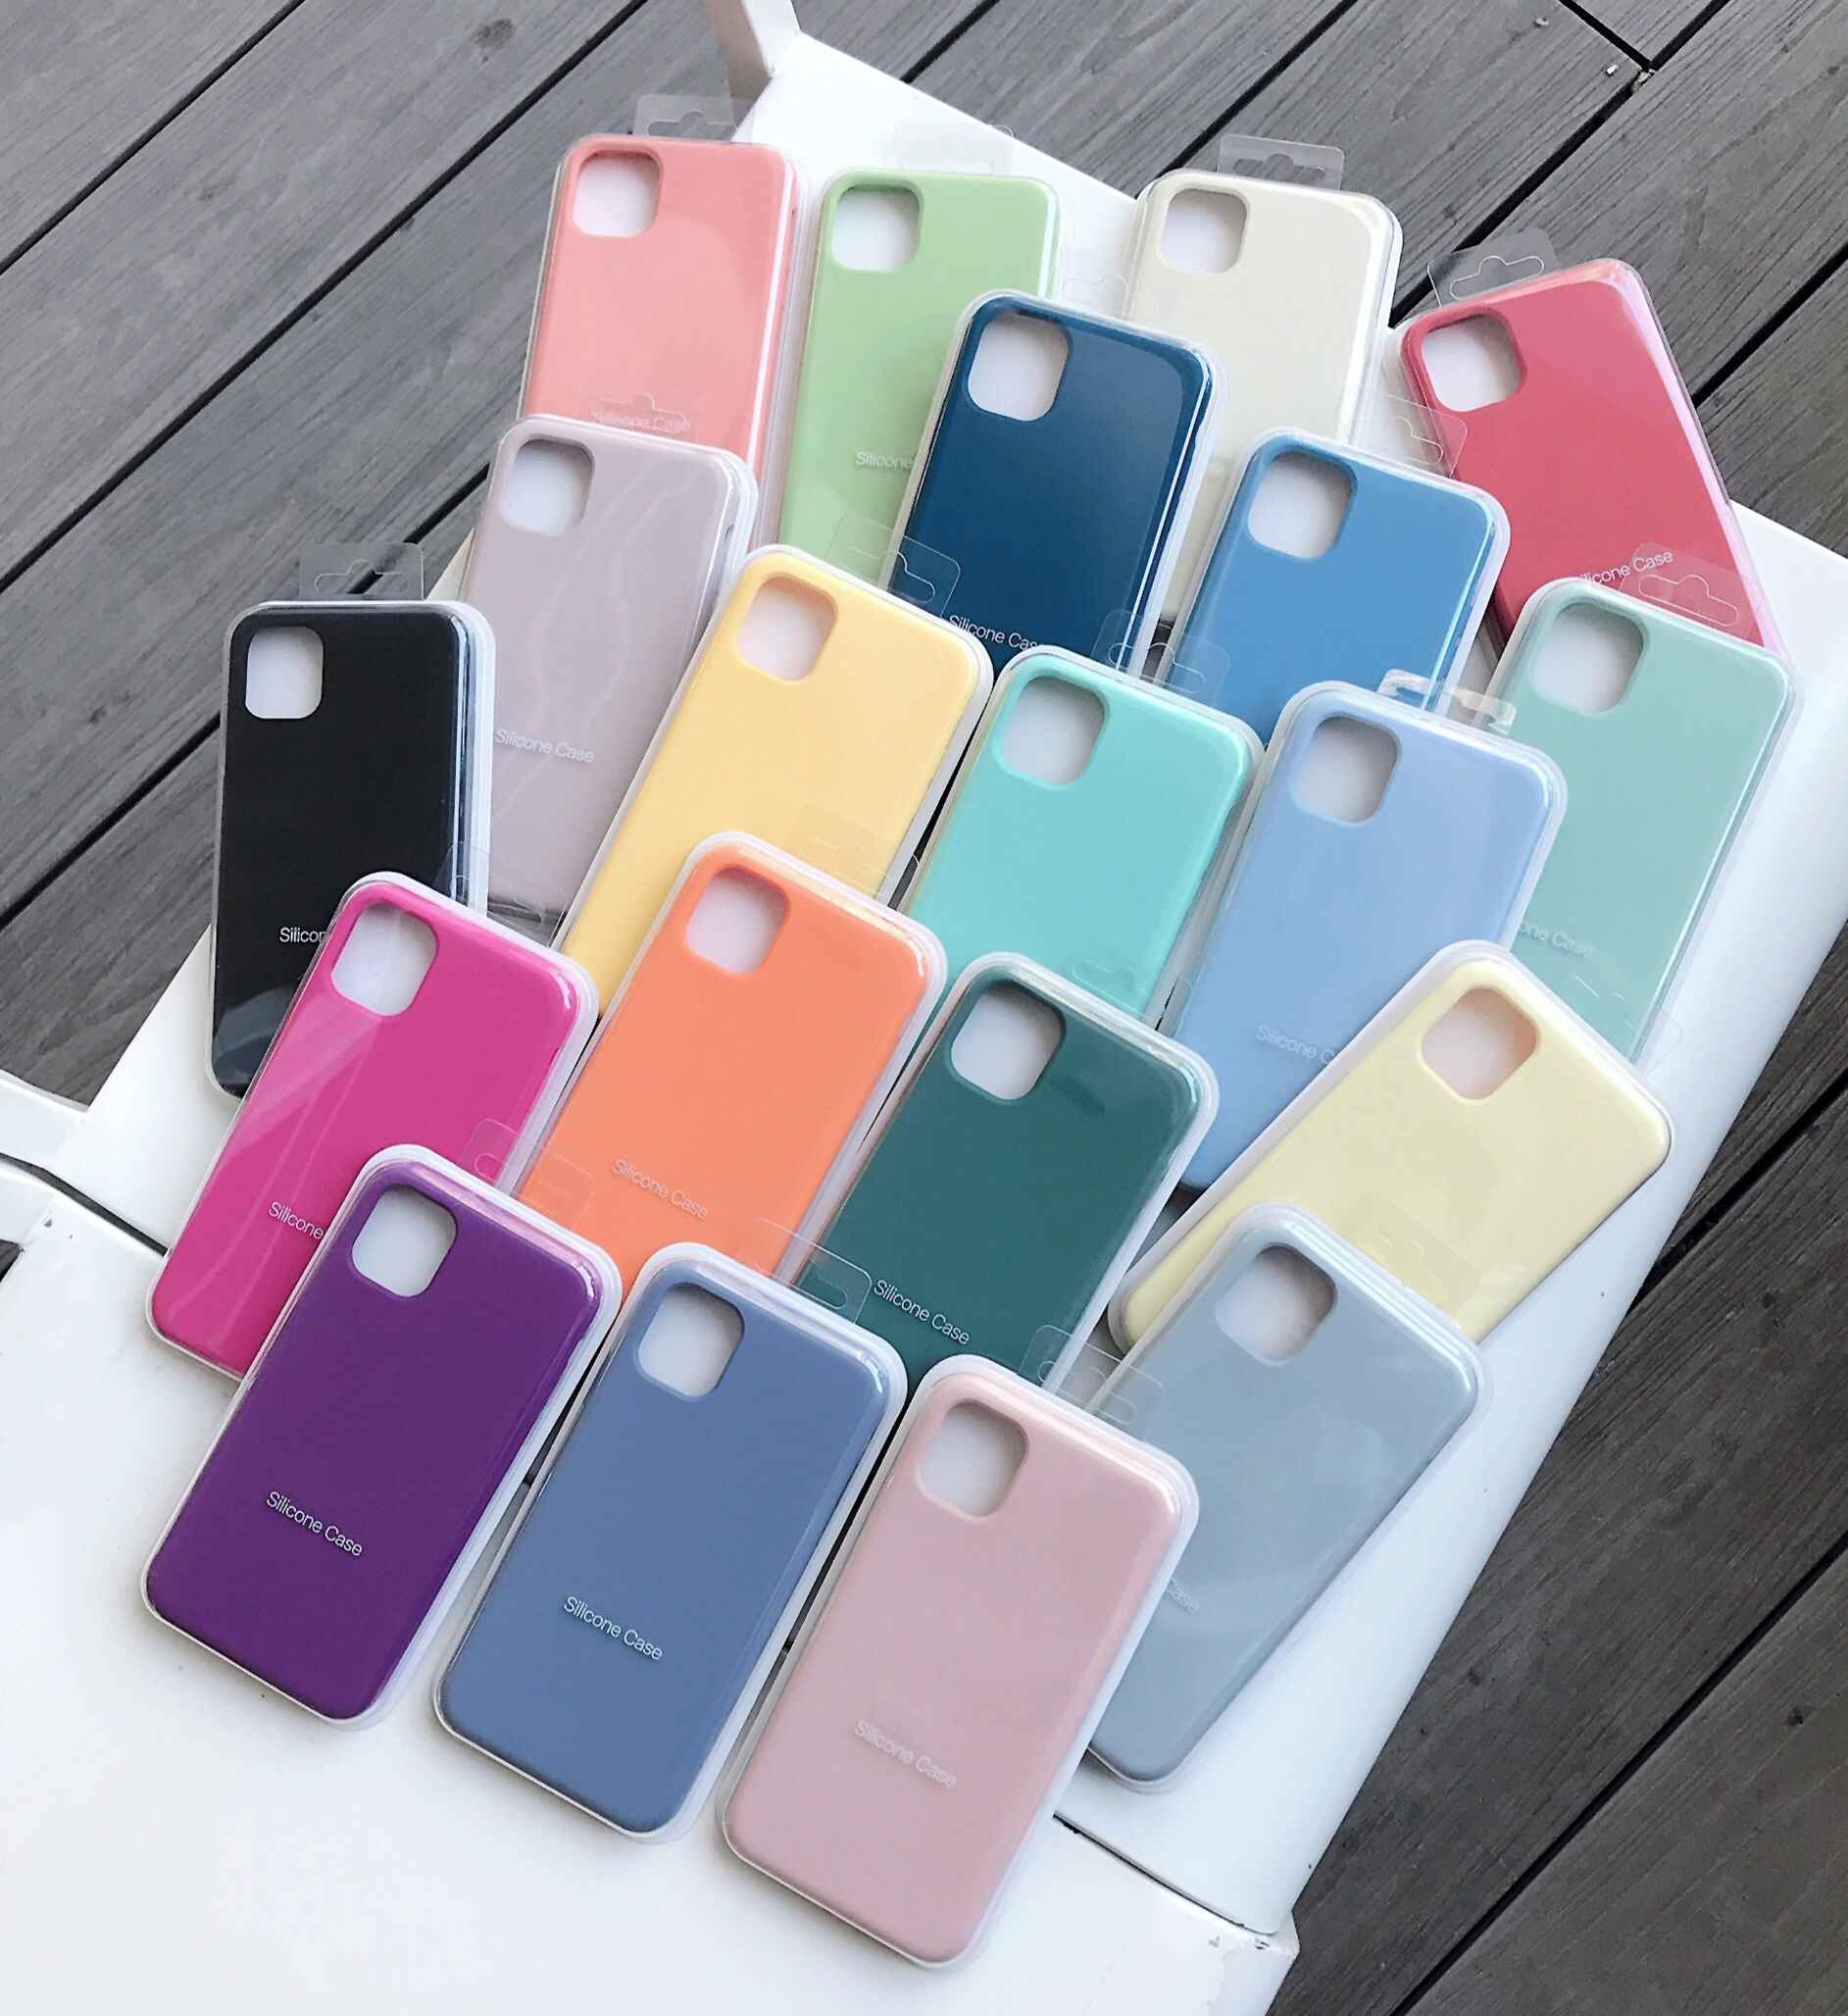 With Box Original Official Liquid Silicone Case For iPhone 12 11 pro XS Max XR X Cases for iPhone 7 8 plus 6 6S SE 2020 12 Pro